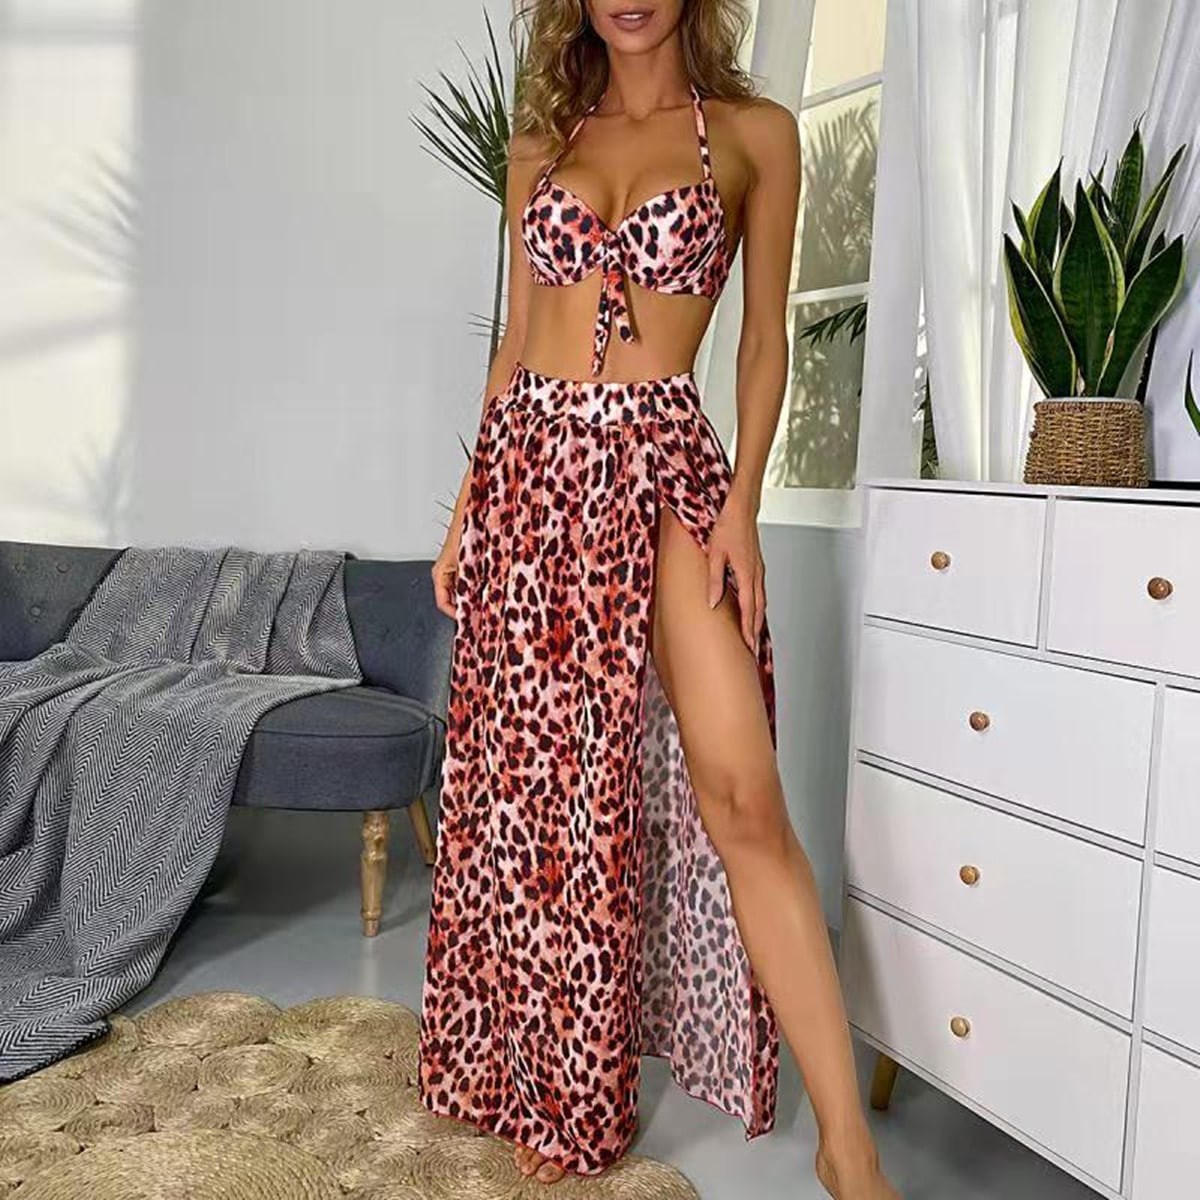 SHEIN / 3pack Leopard Push Up Bikini Swimsuit & Beach Skirt